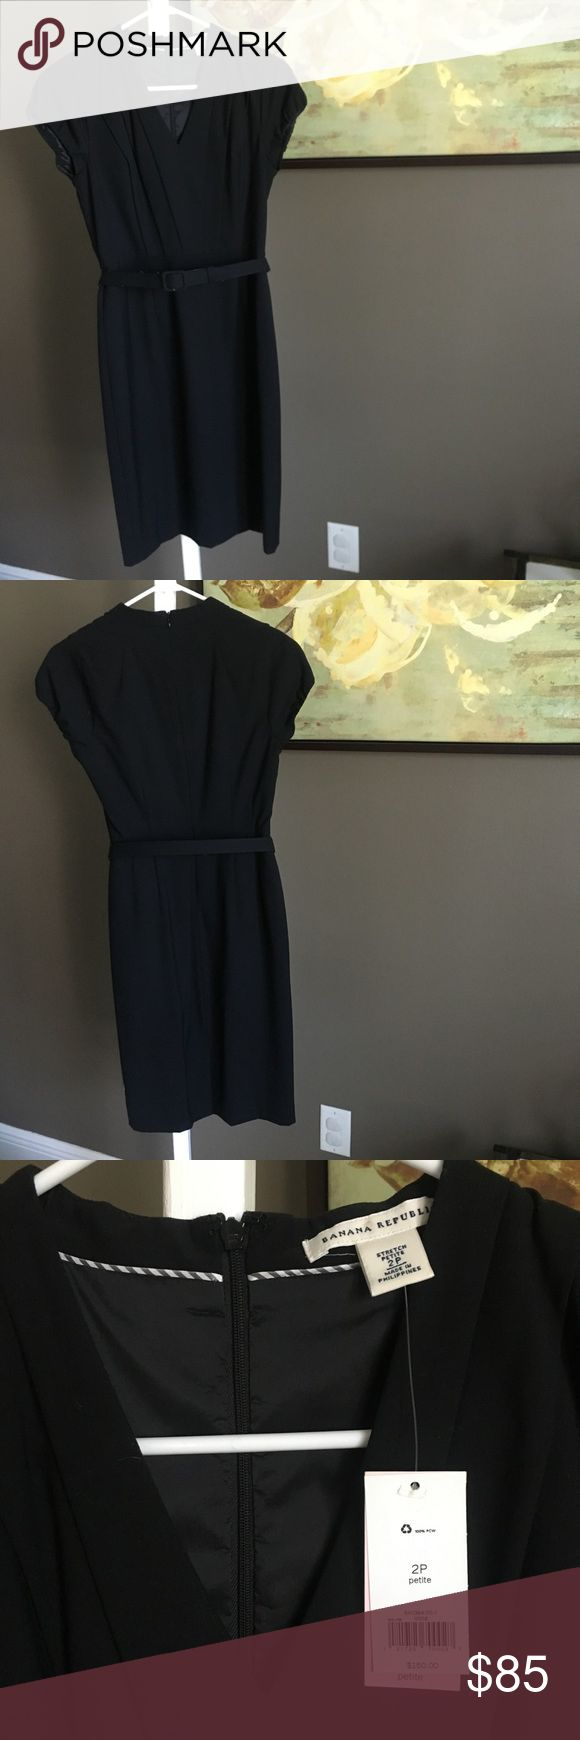 🆕 Banana Republic Sheath Dress - Size 2P Banana Republic black sheath dress with removable belt, size 2 petite. Pleated busy for slimming effect, zip closure, fully lined. Brand new, with tags. Banana Republic Dresses